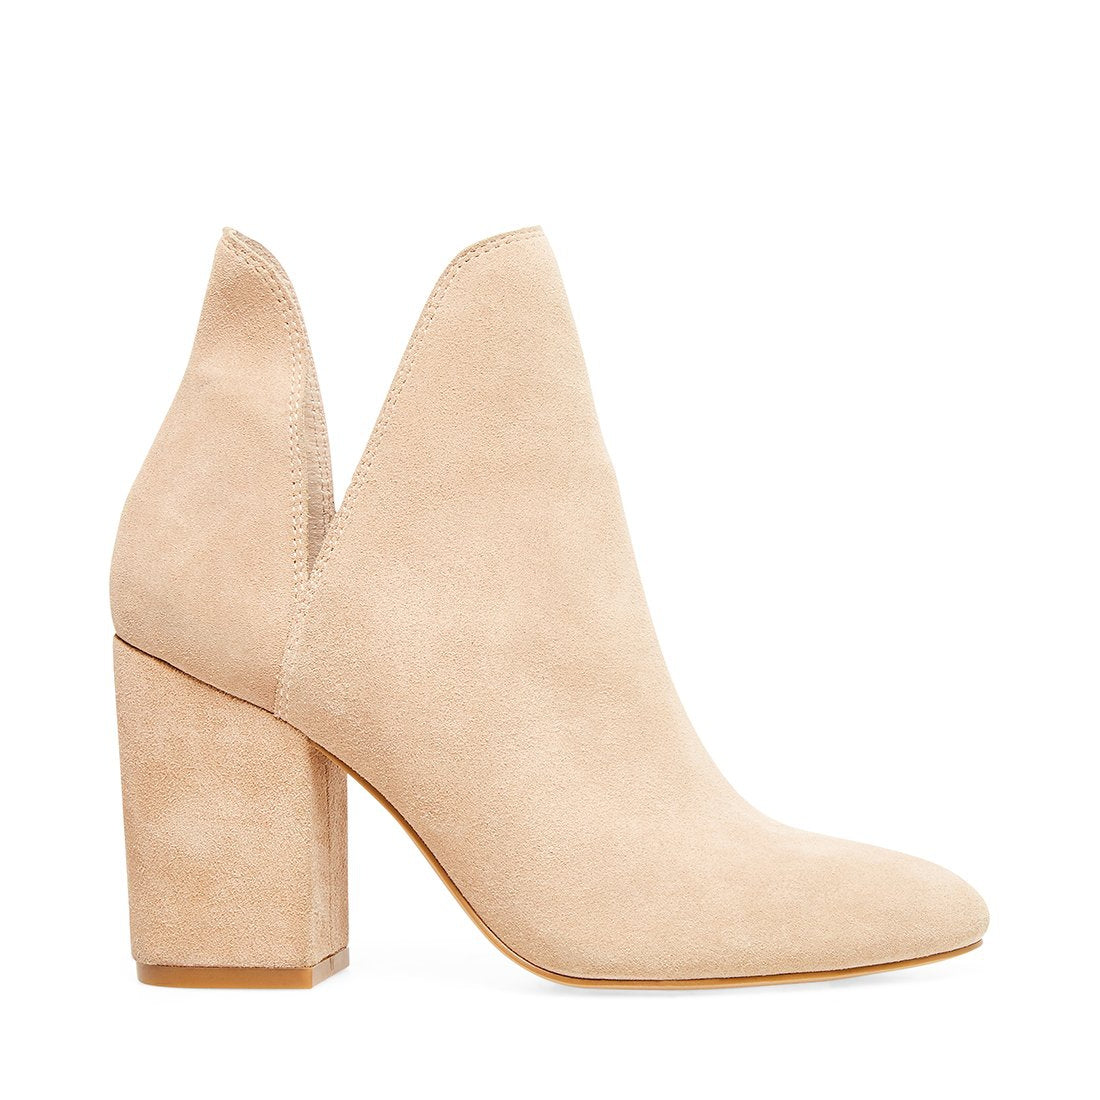 236b8a83923 ROOKIE TAUPE SUEDE